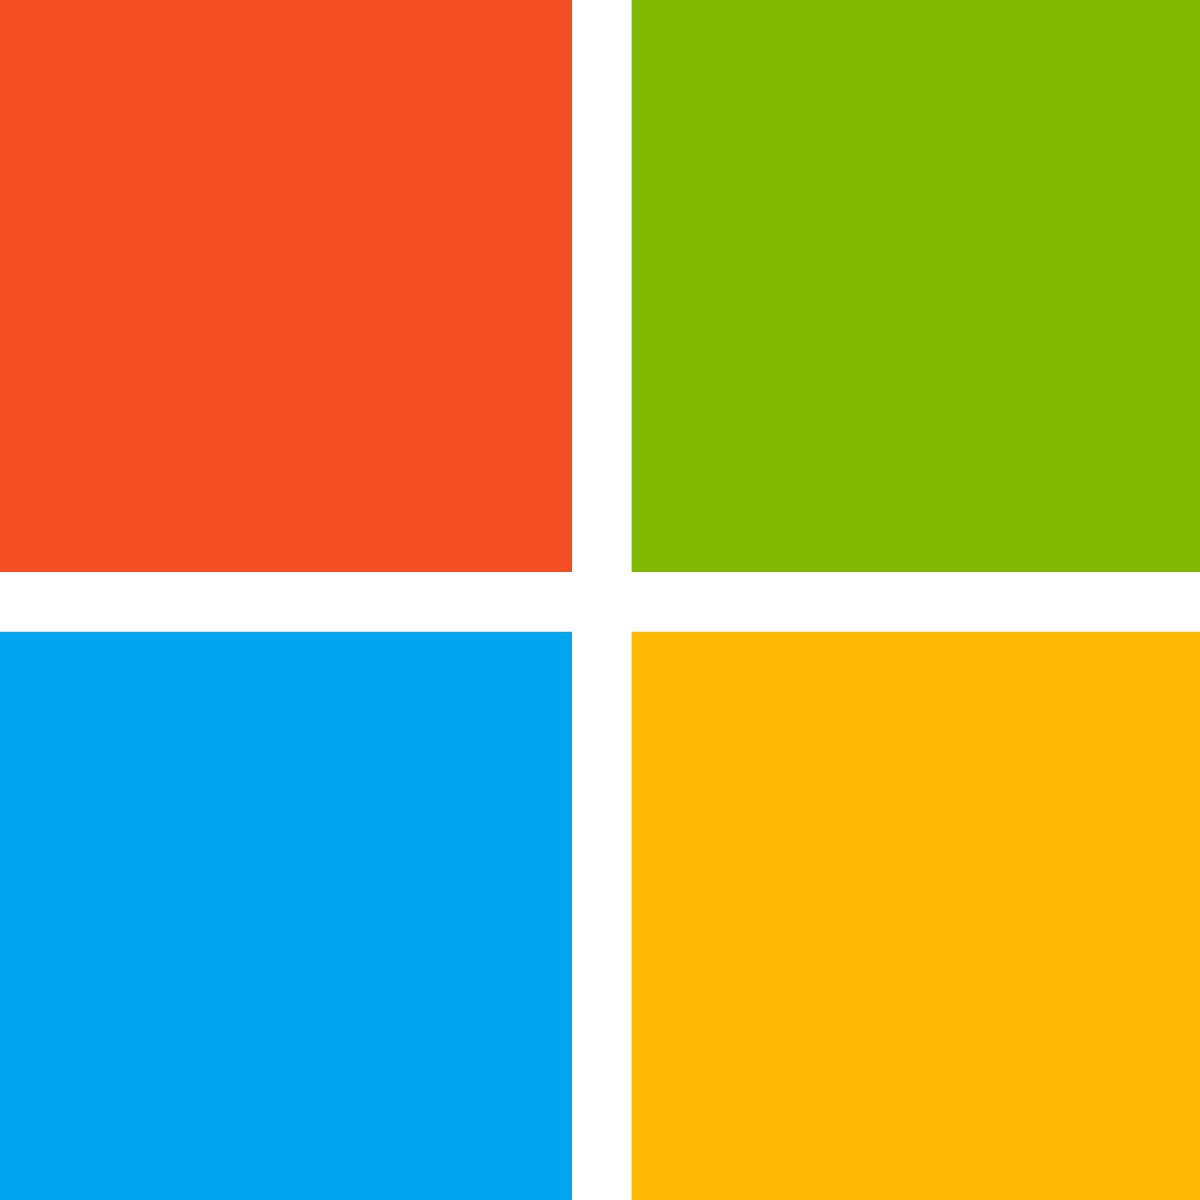 Microsoft & IAMCP Twitter Accounts